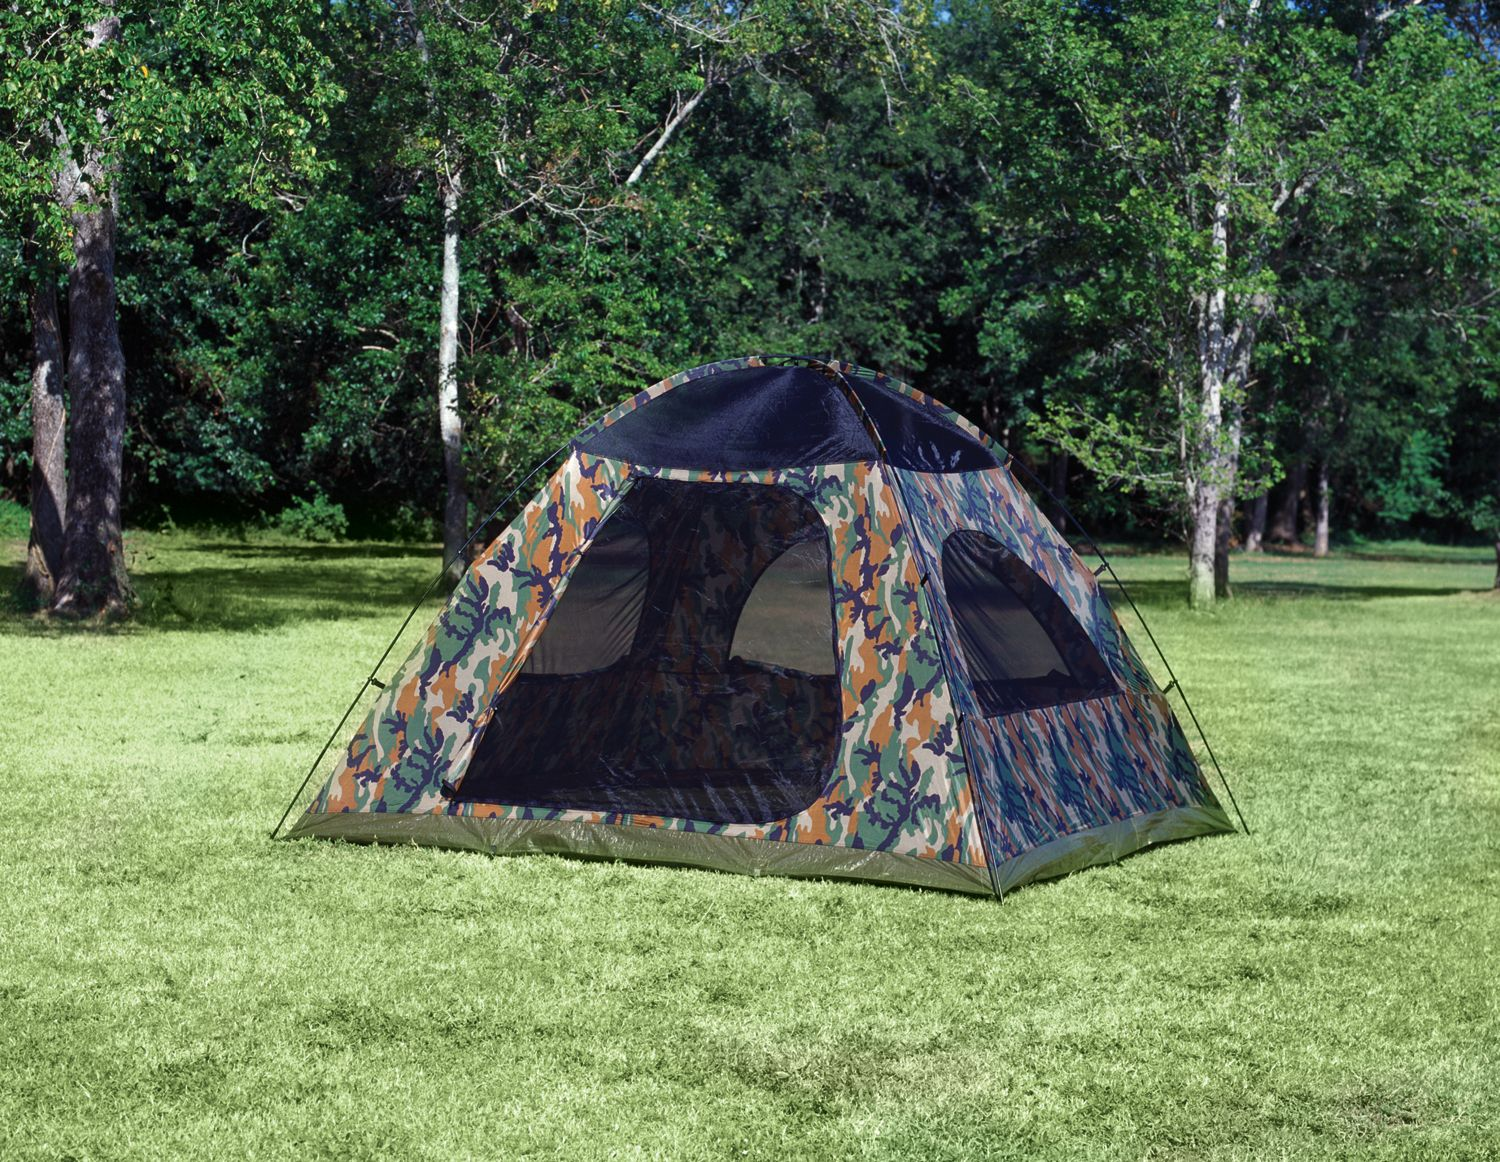 Texsport Tent, Headquarters Camouflage Square Dome Tent